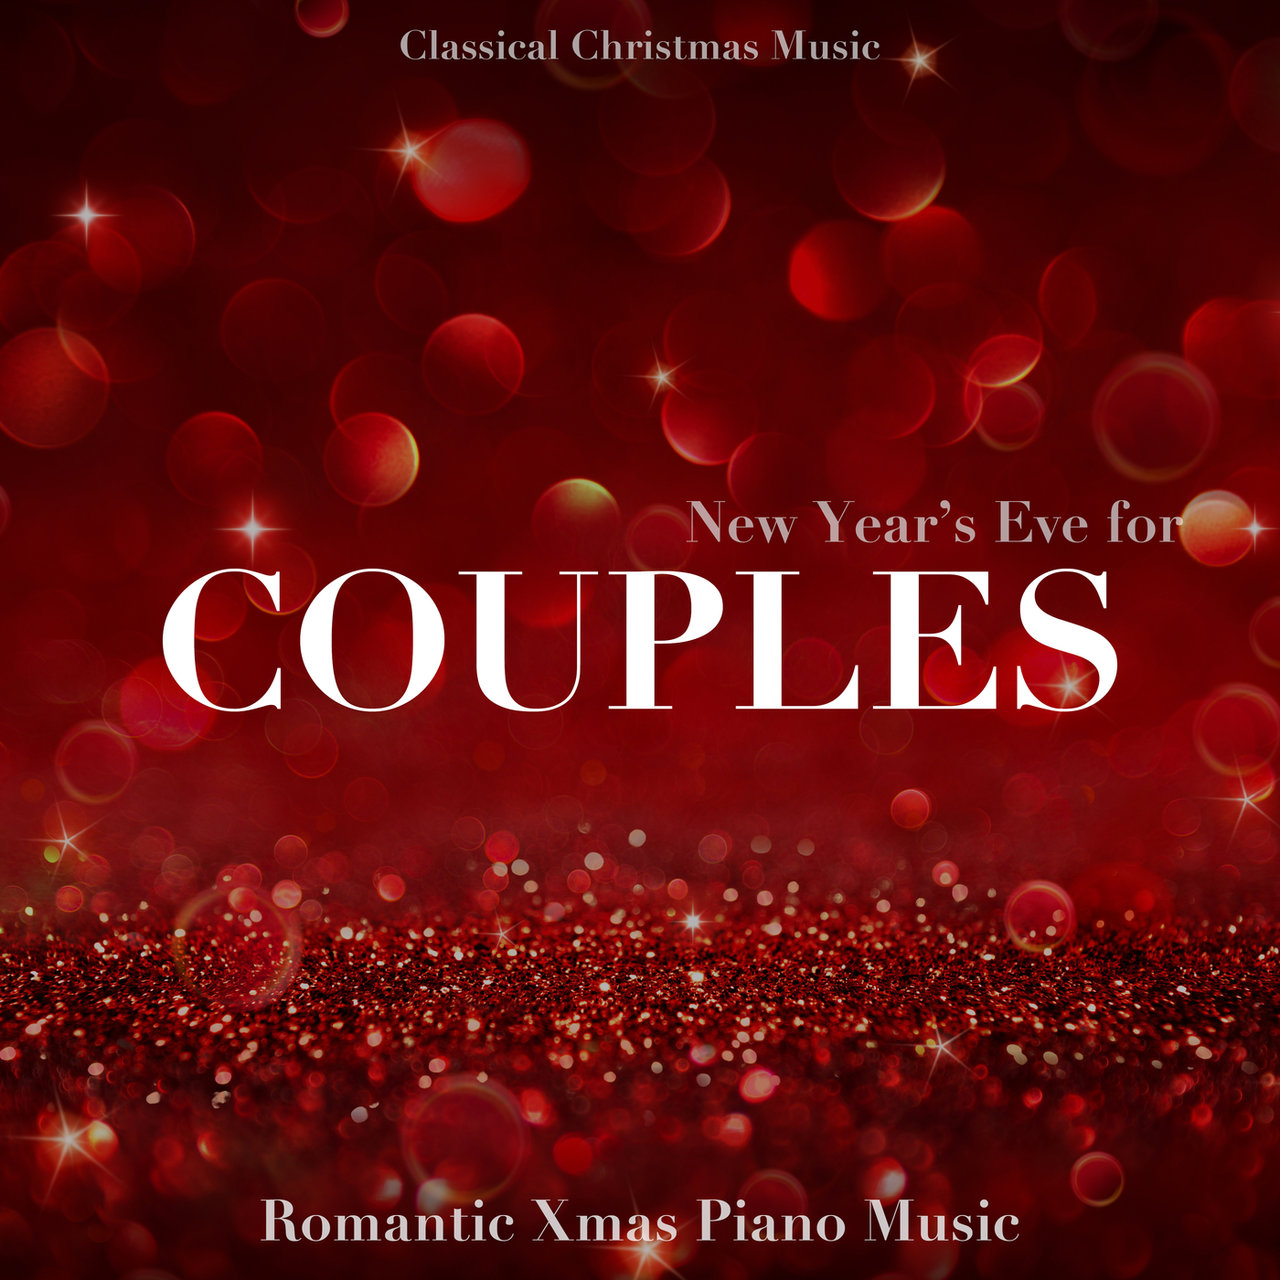 new years eve for couples instrumental romantic piano music to celebrate new years eve with - Classical Christmas Music